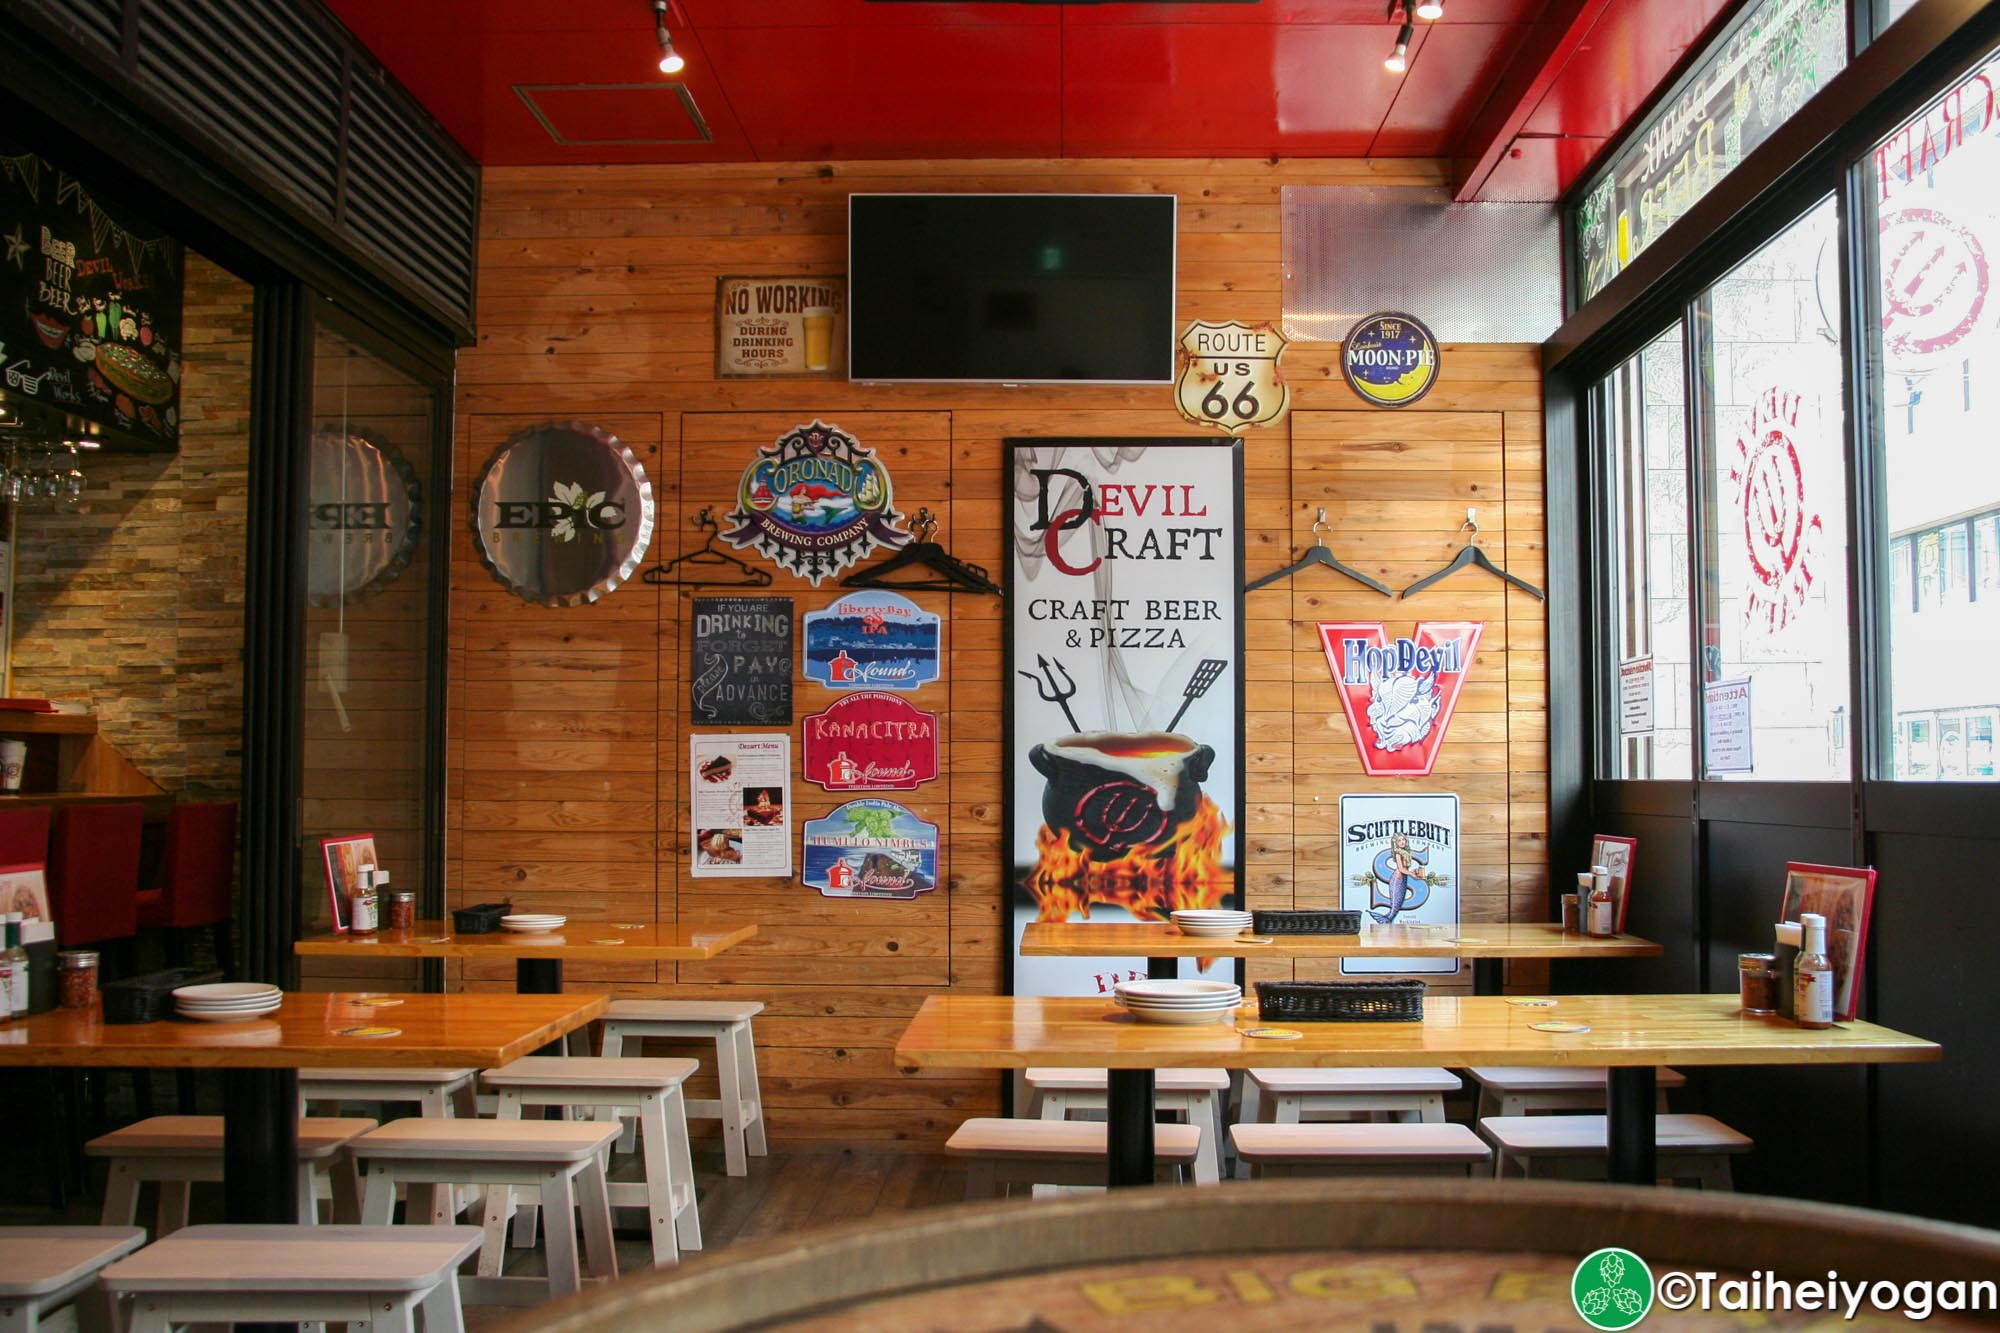 DevilCraft (Hamamtsucho・浜松町店) - Interior - Terrace Seating Area